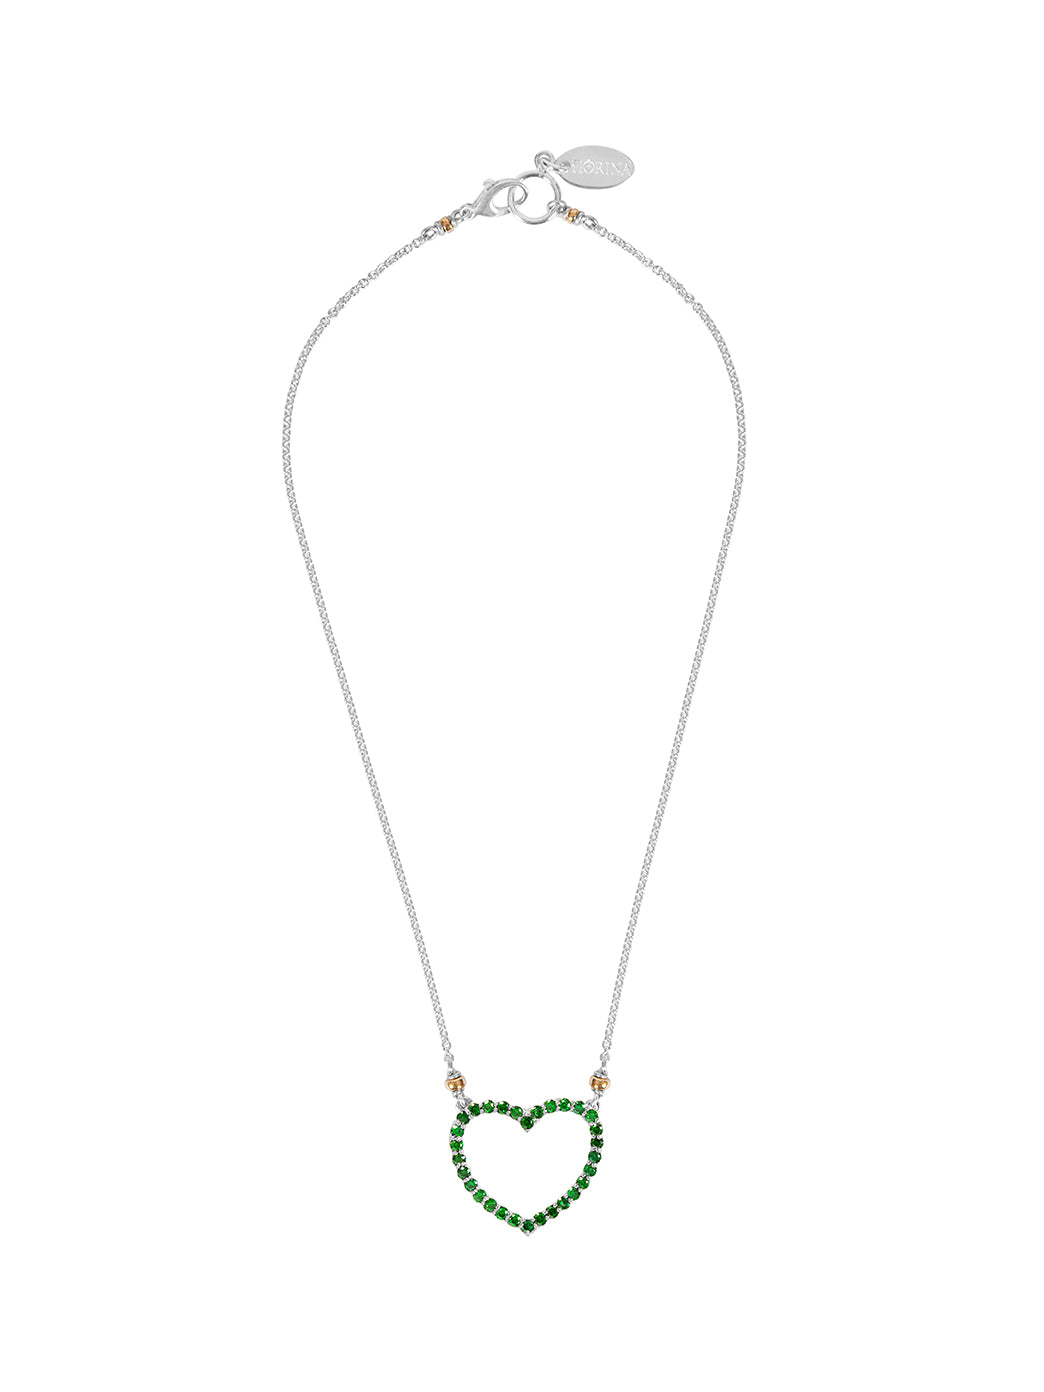 Fiorina Jewellery Heart Love Necklace Emerald